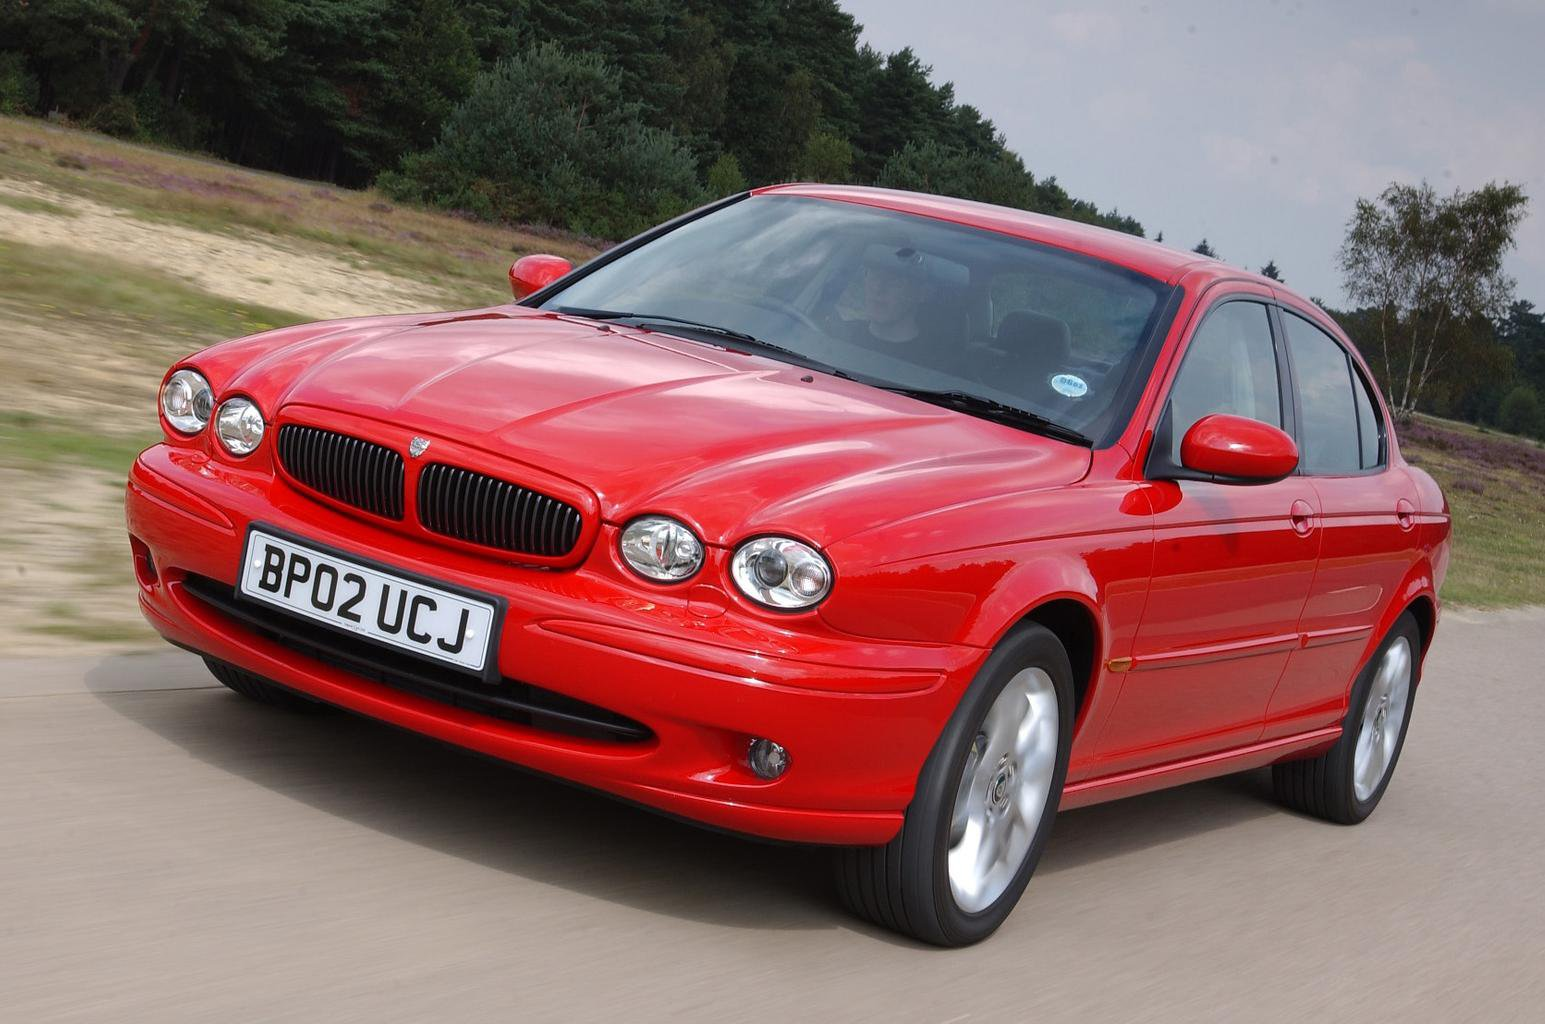 Jaguar X-Type (01 - 10)